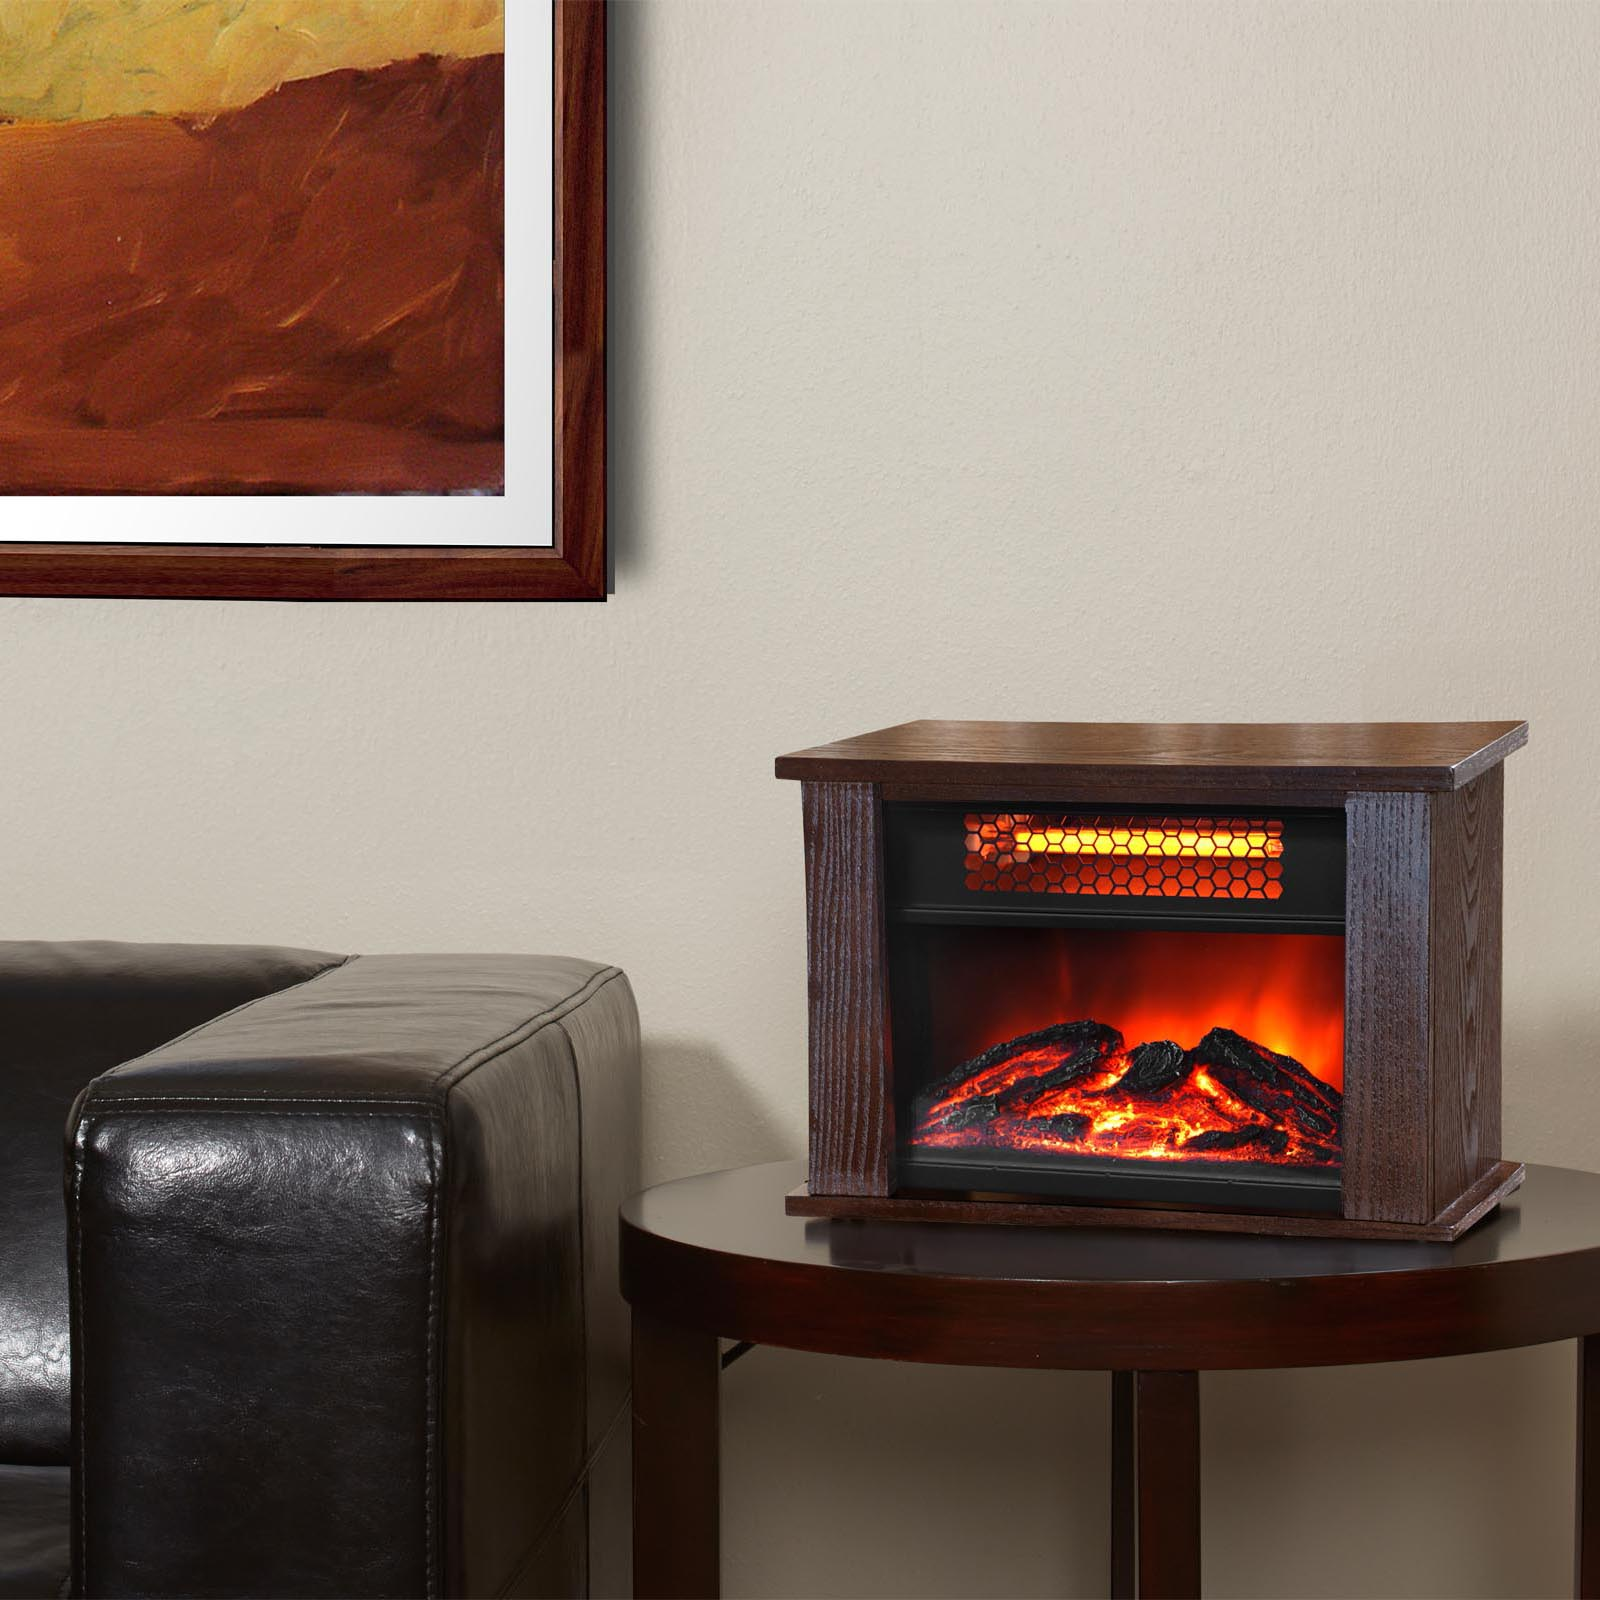 lifepro lifesmart 750 watt infrared quartz mini wood fireplace